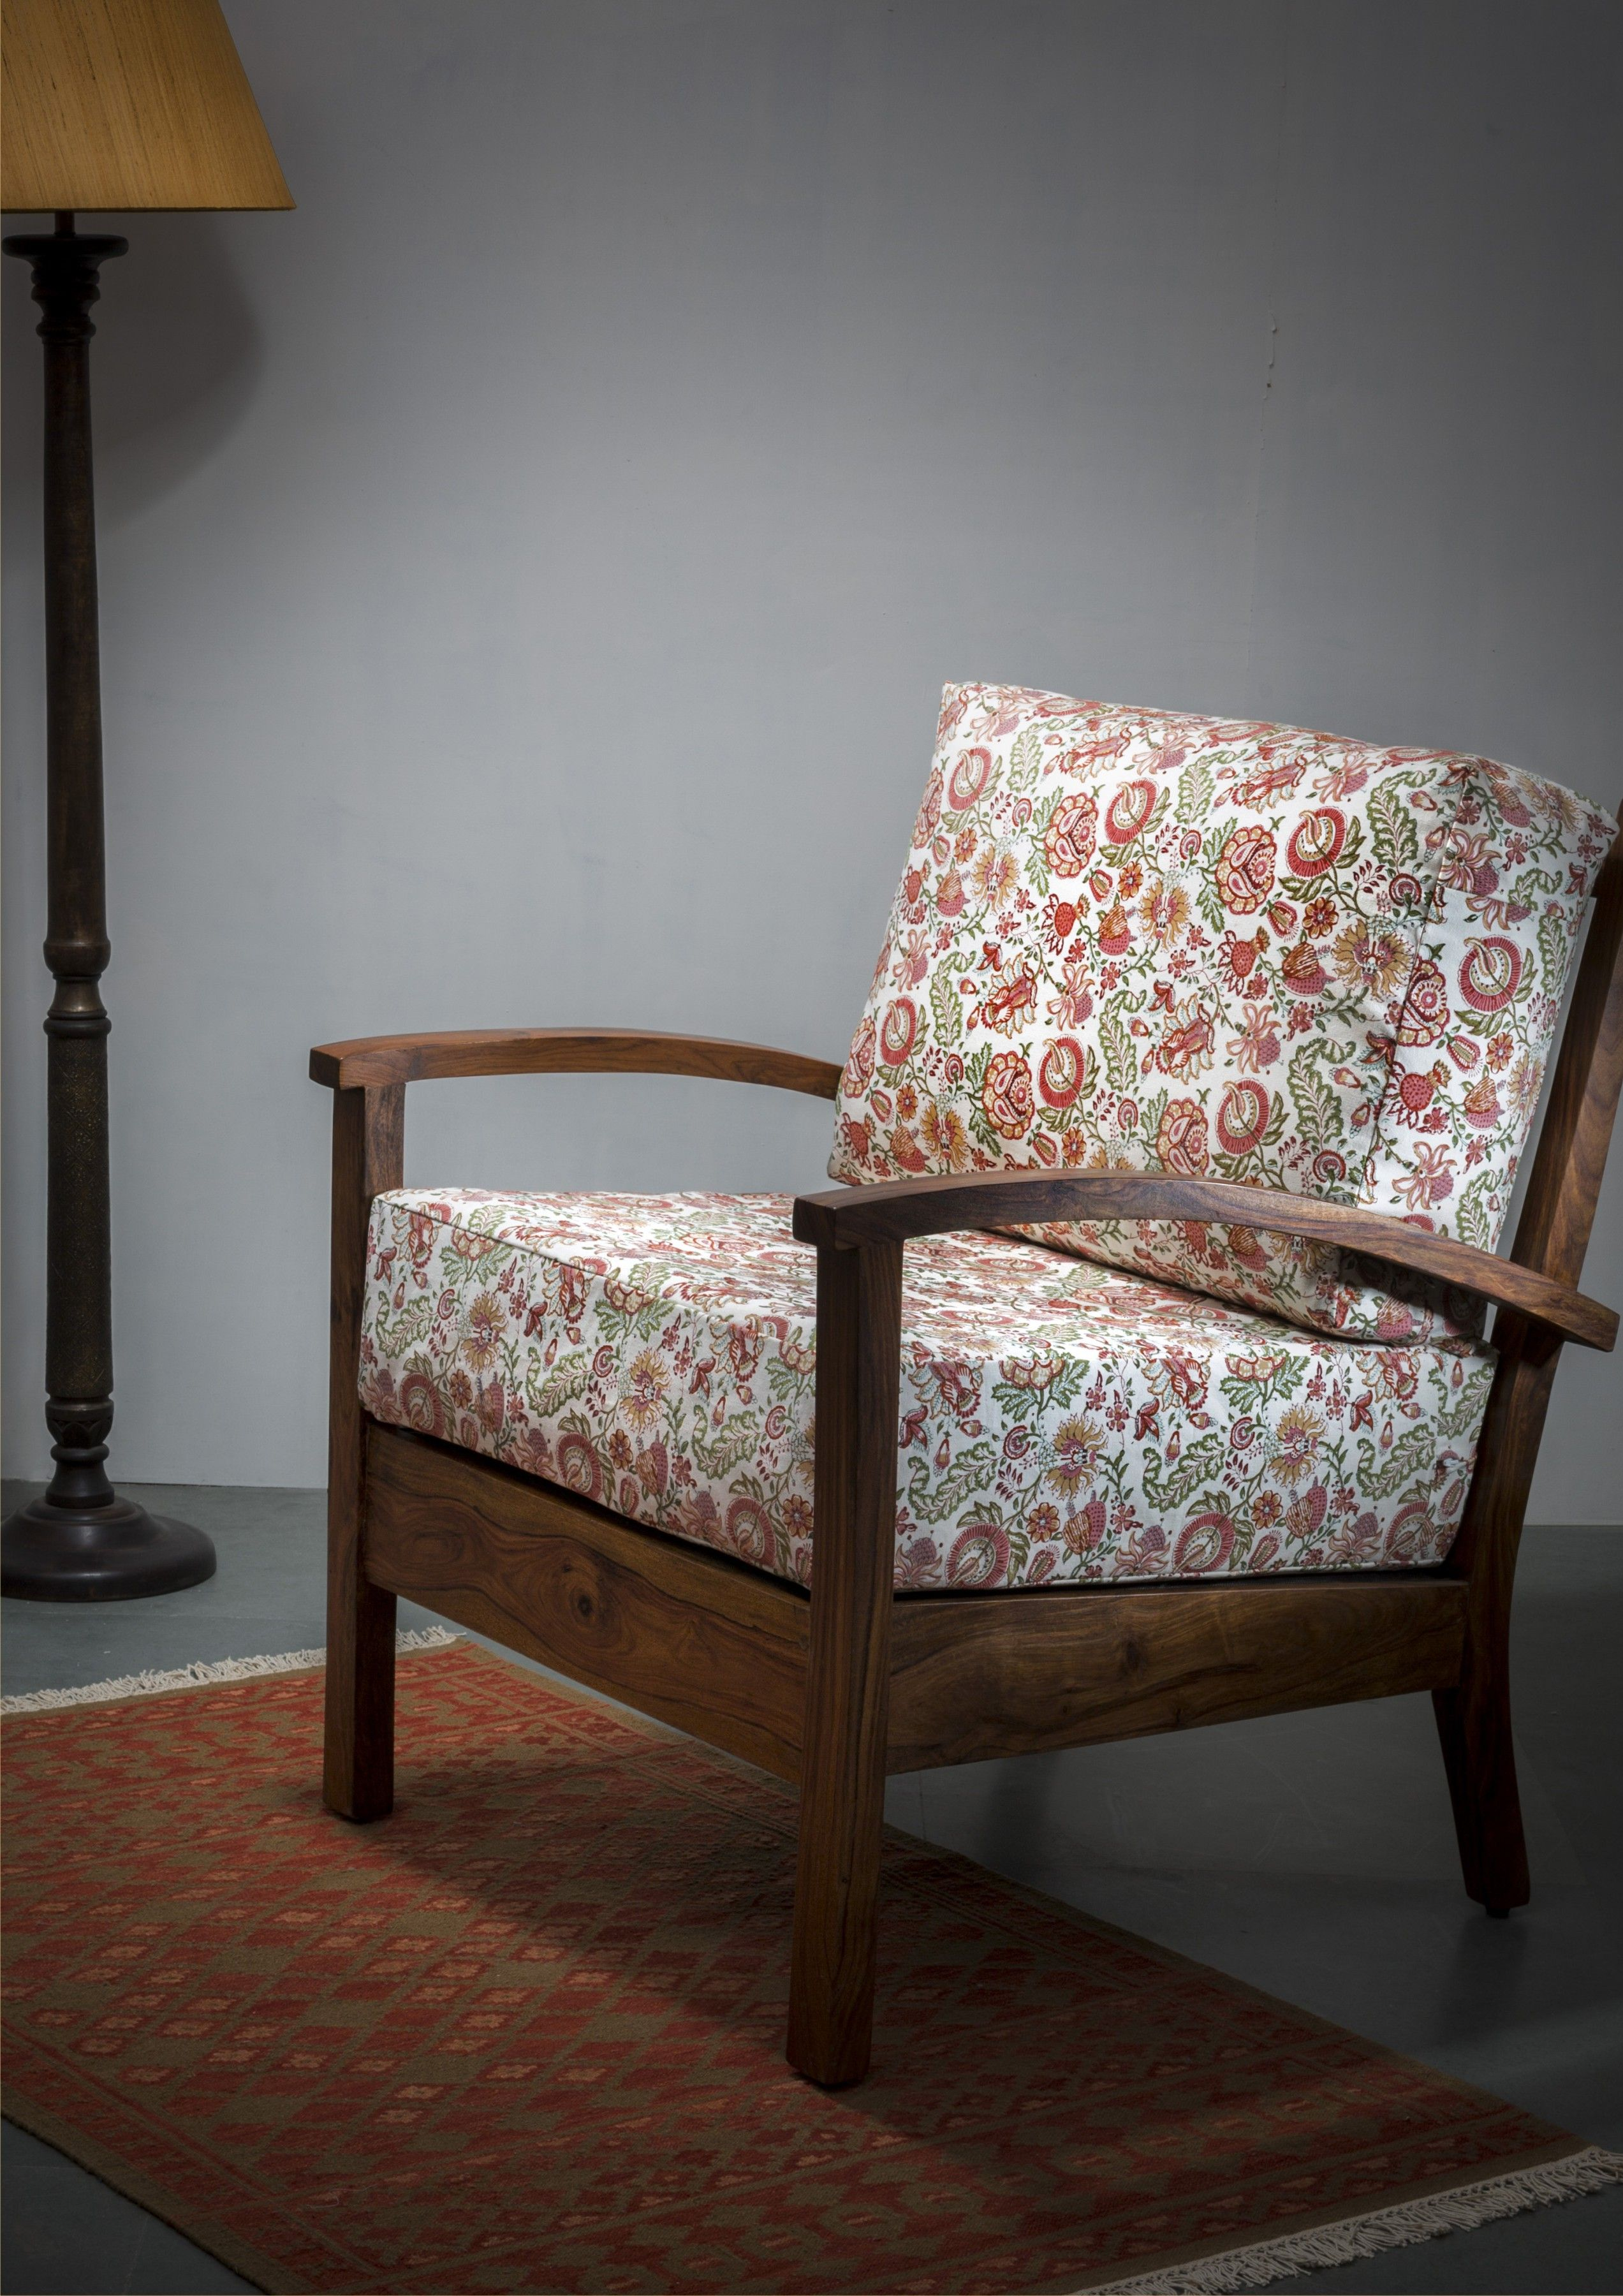 Wooden Furniture Living Room Designs: #sofa #upholstery #print #floral #cosy #living #decor